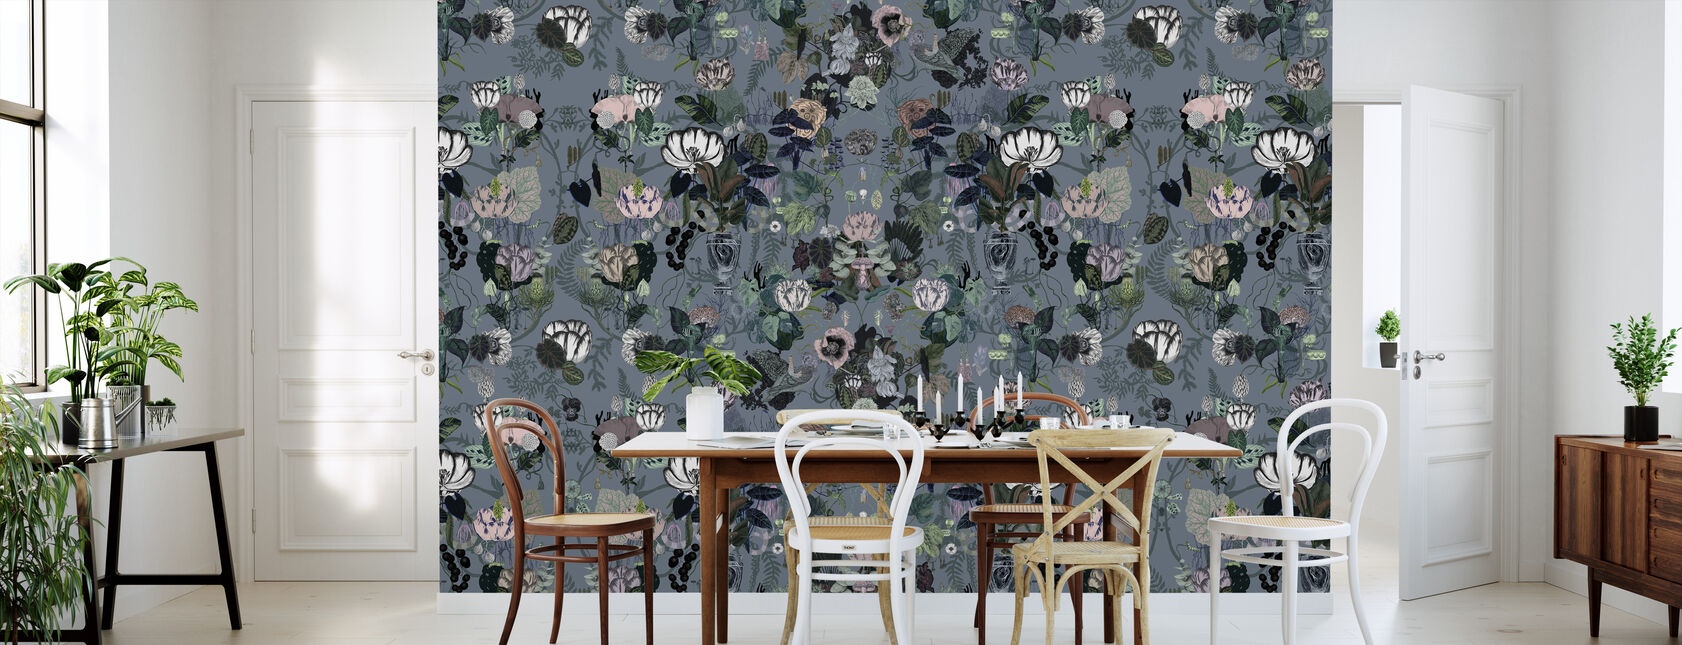 Oh the Tulips - Wallpaper - Kitchen